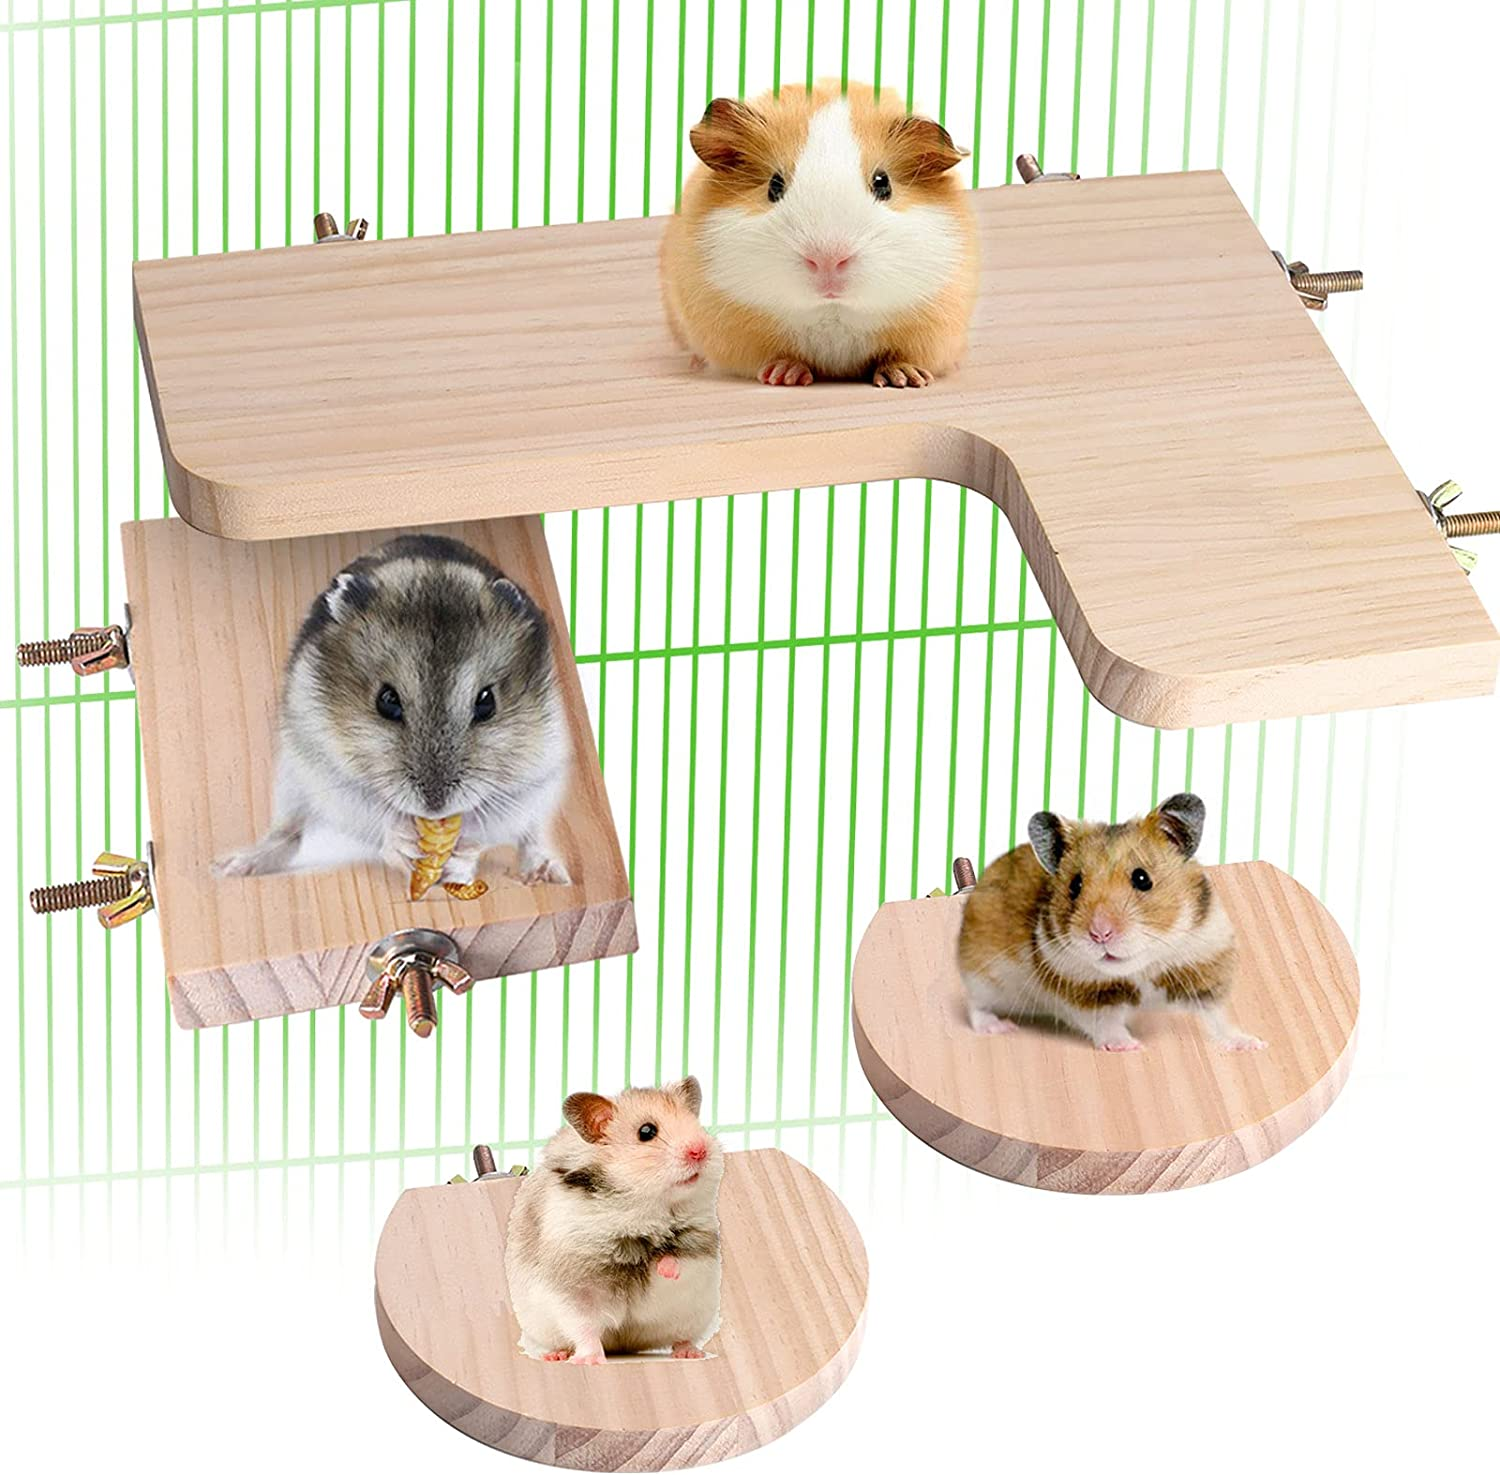 Chinchilla Cage Accessories Platform Austin Mall National products Wooden Rat